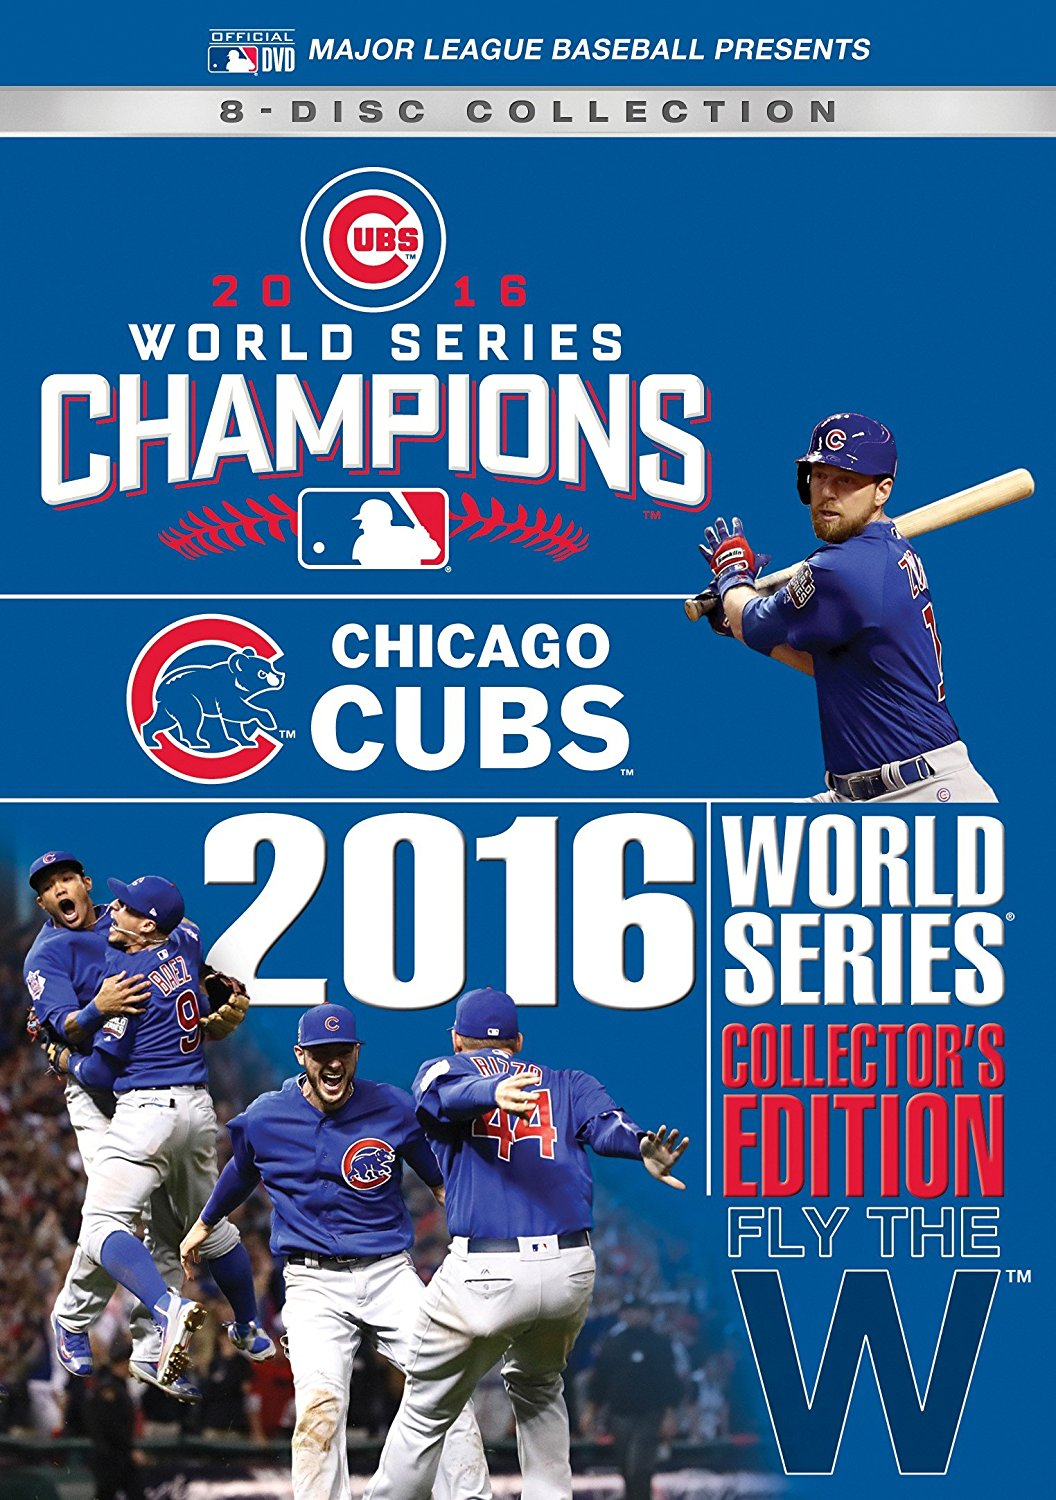 Chicago Cubs 2016 World Series Collector's Edition DVD or Blu-ray - Free Shipping